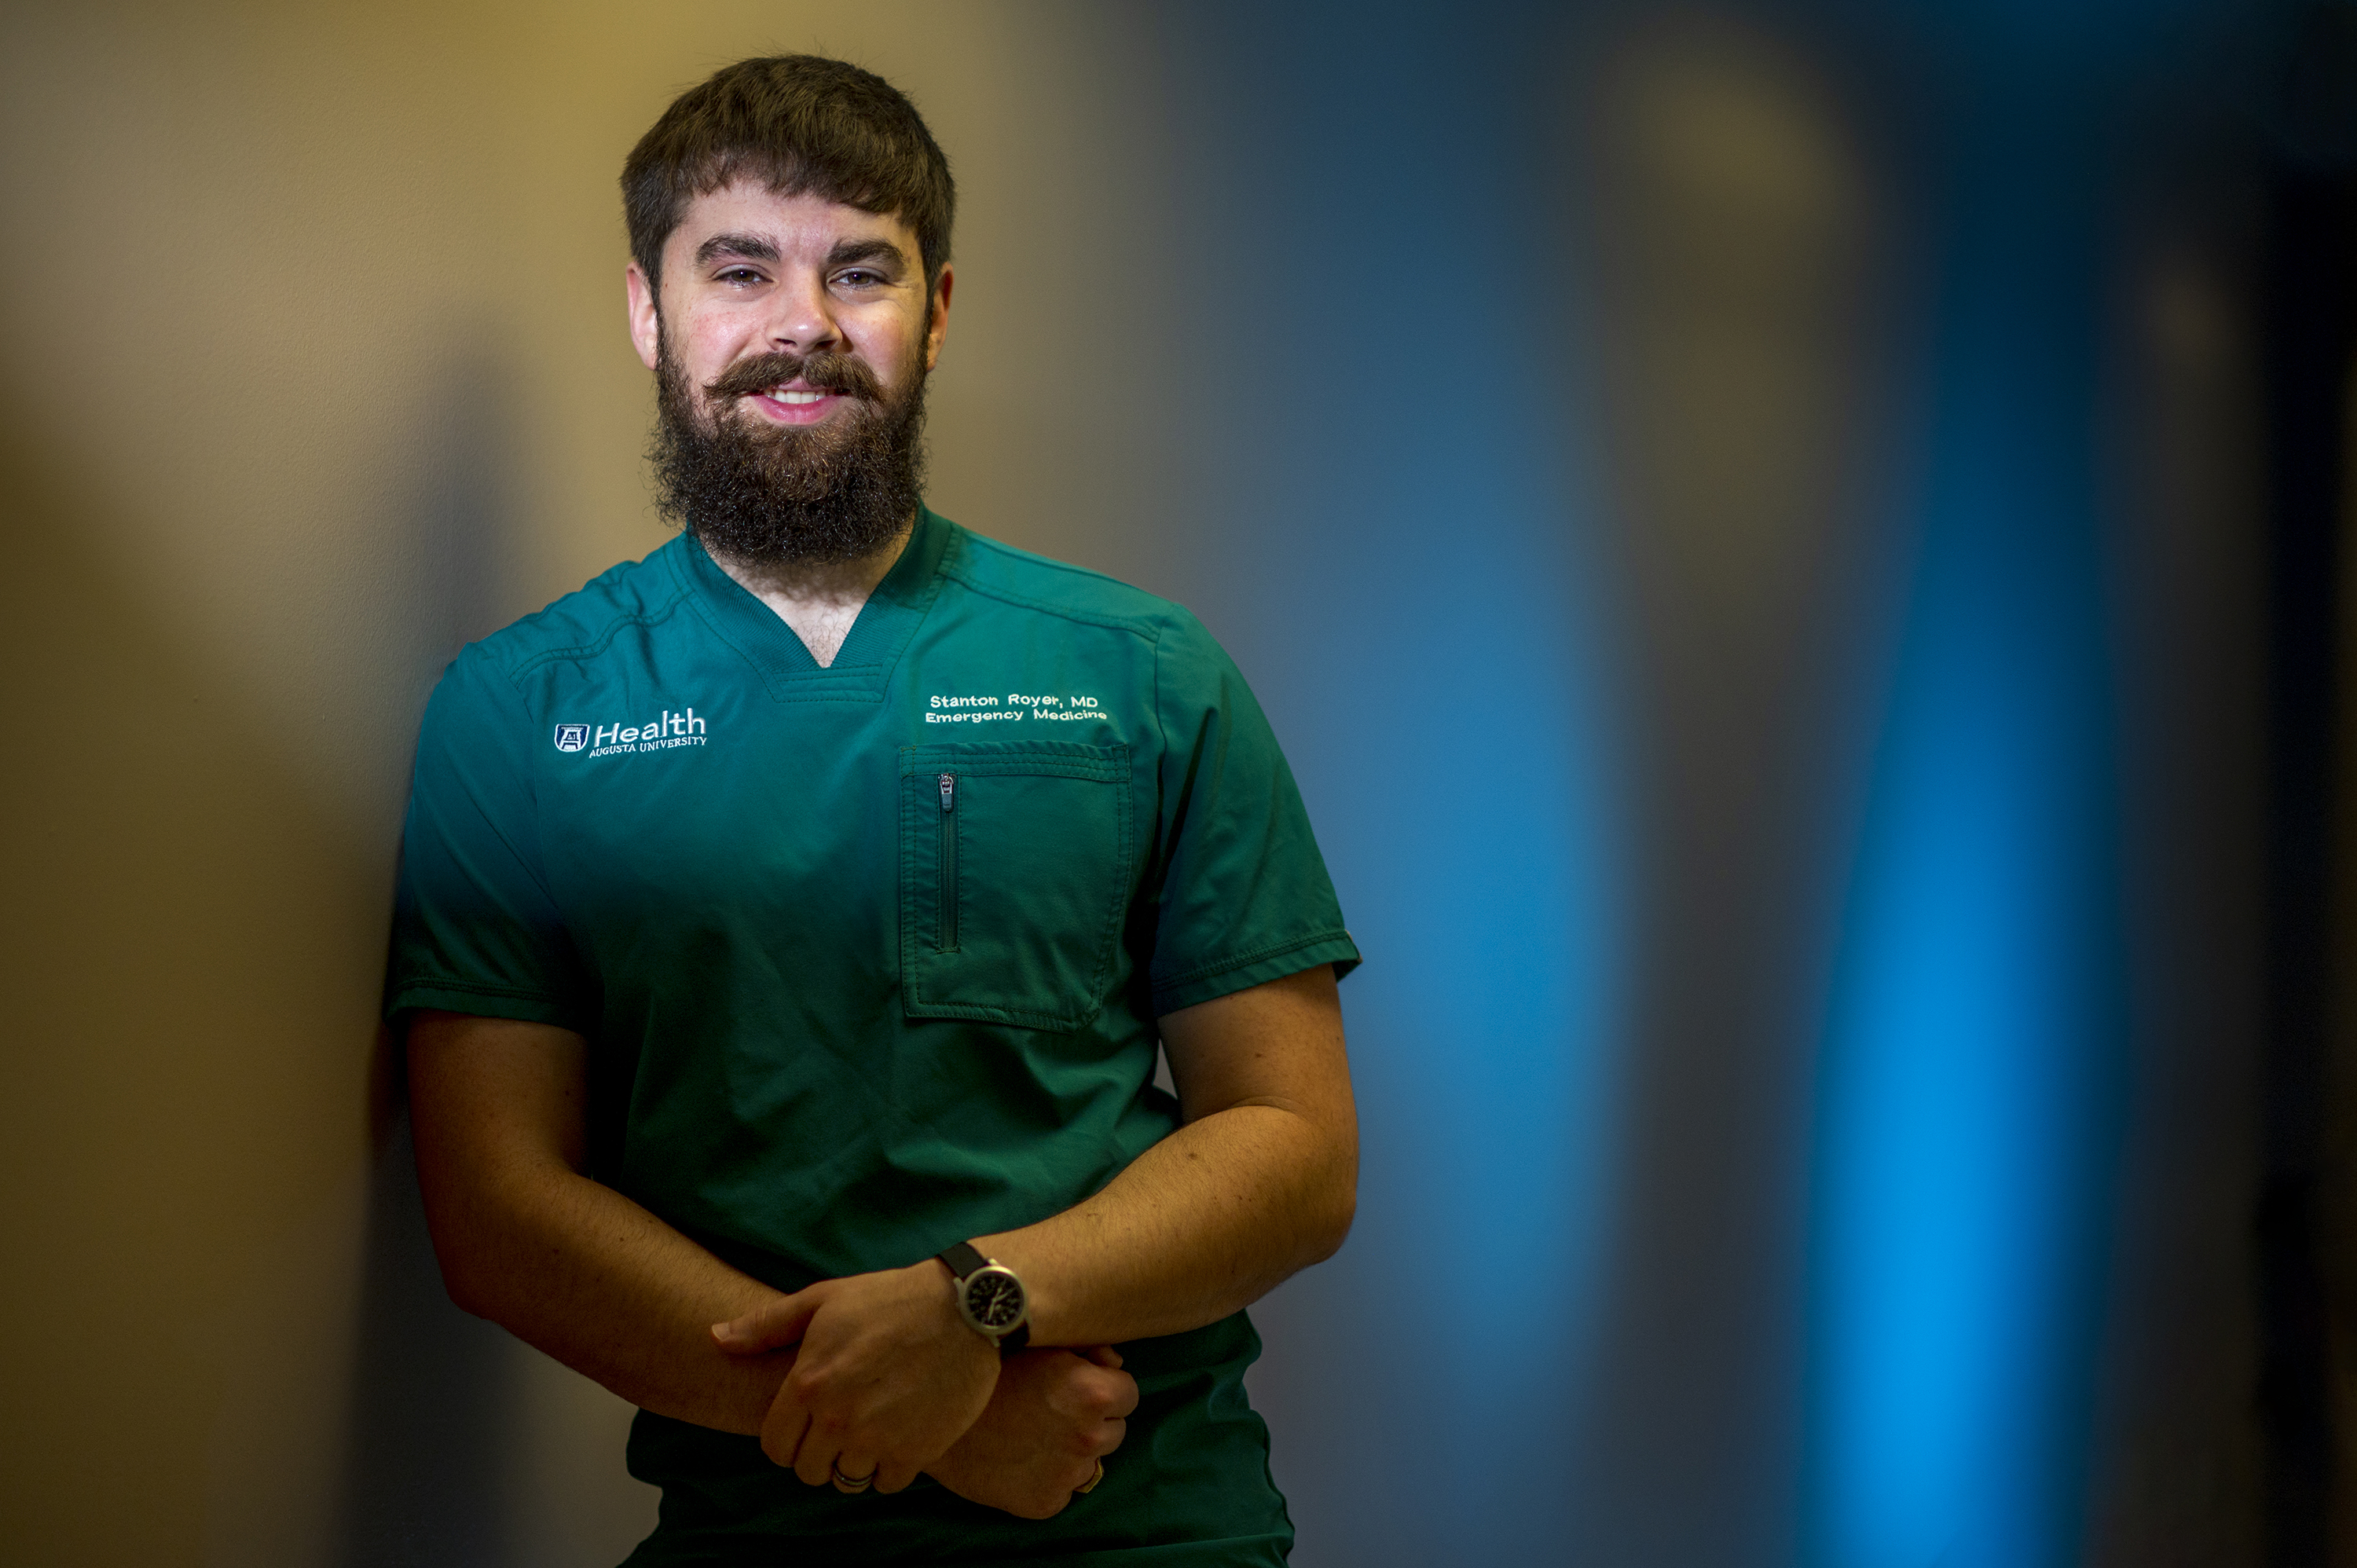 Man with beard in green scrubs look at the camera